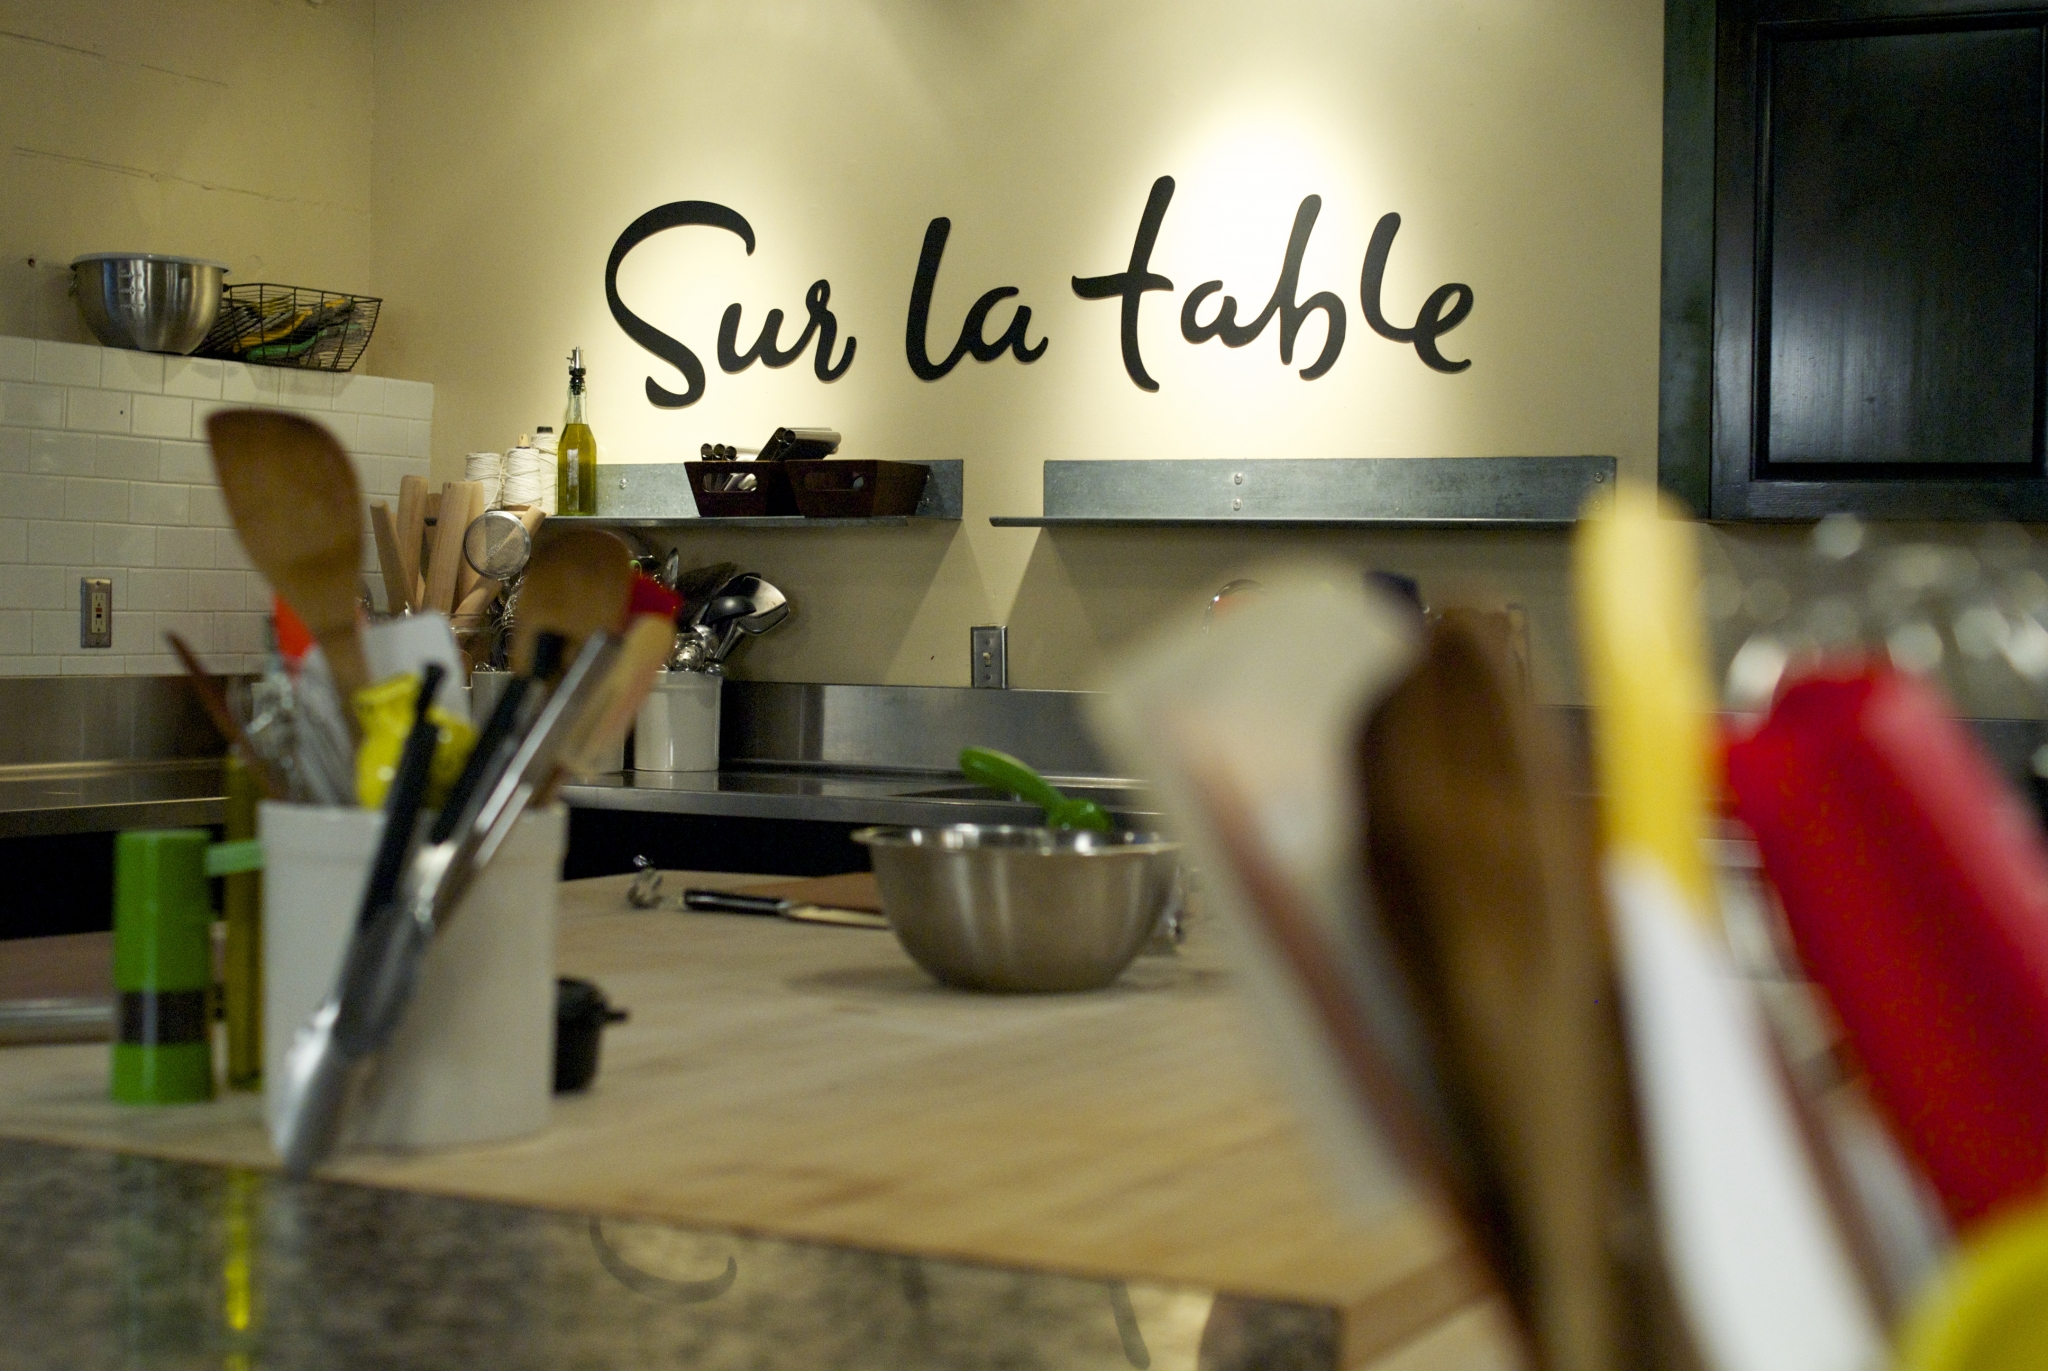 Get a deal on cooking school at new Baybrook Sur kitchen table cooking school Get a deal on cooking school at new Baybrook Sur La Table Houston Chronicle